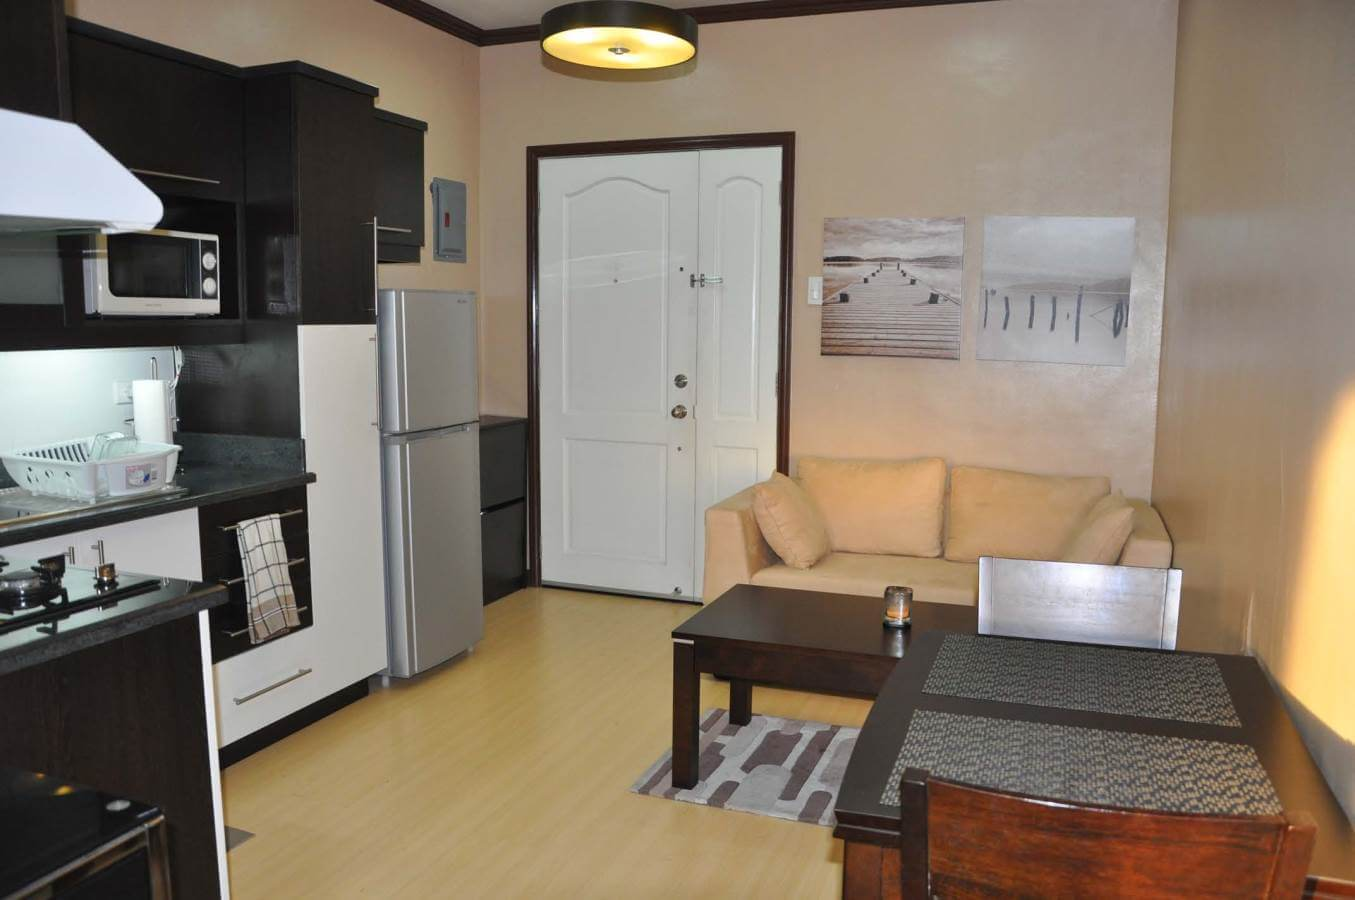 Palaciego Uno Fully Furnished 1 Bedroom Condo Unit For Sale